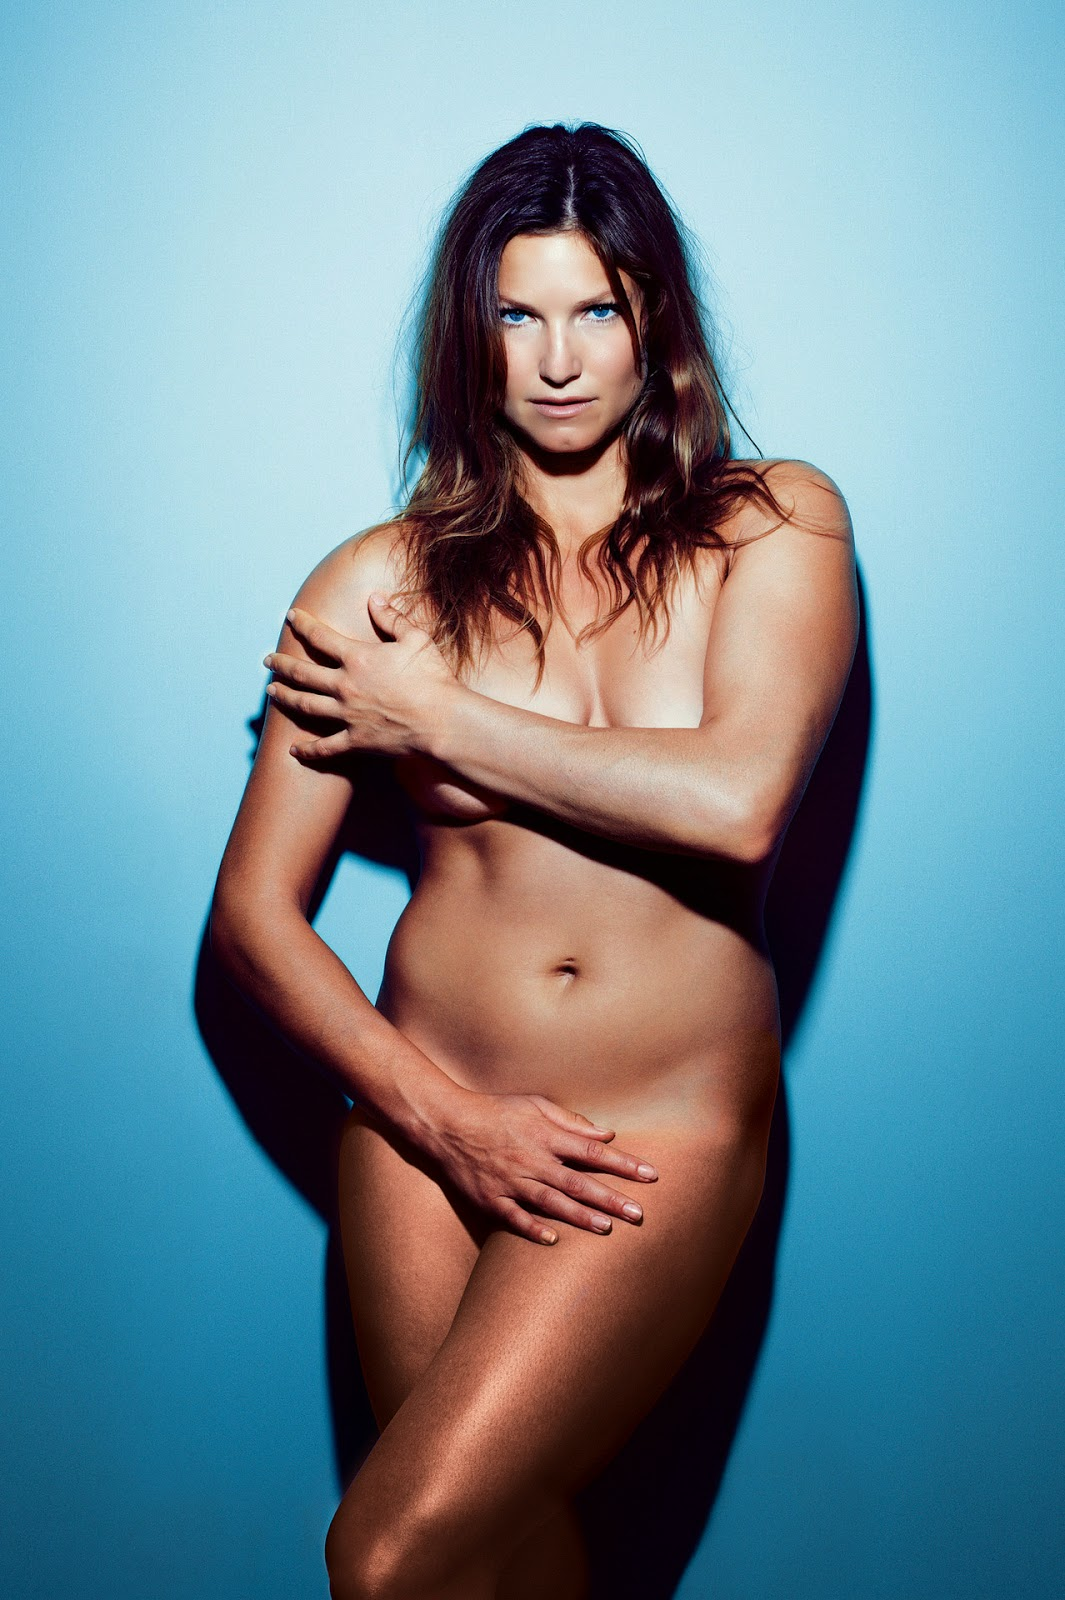 Woman olympians nude